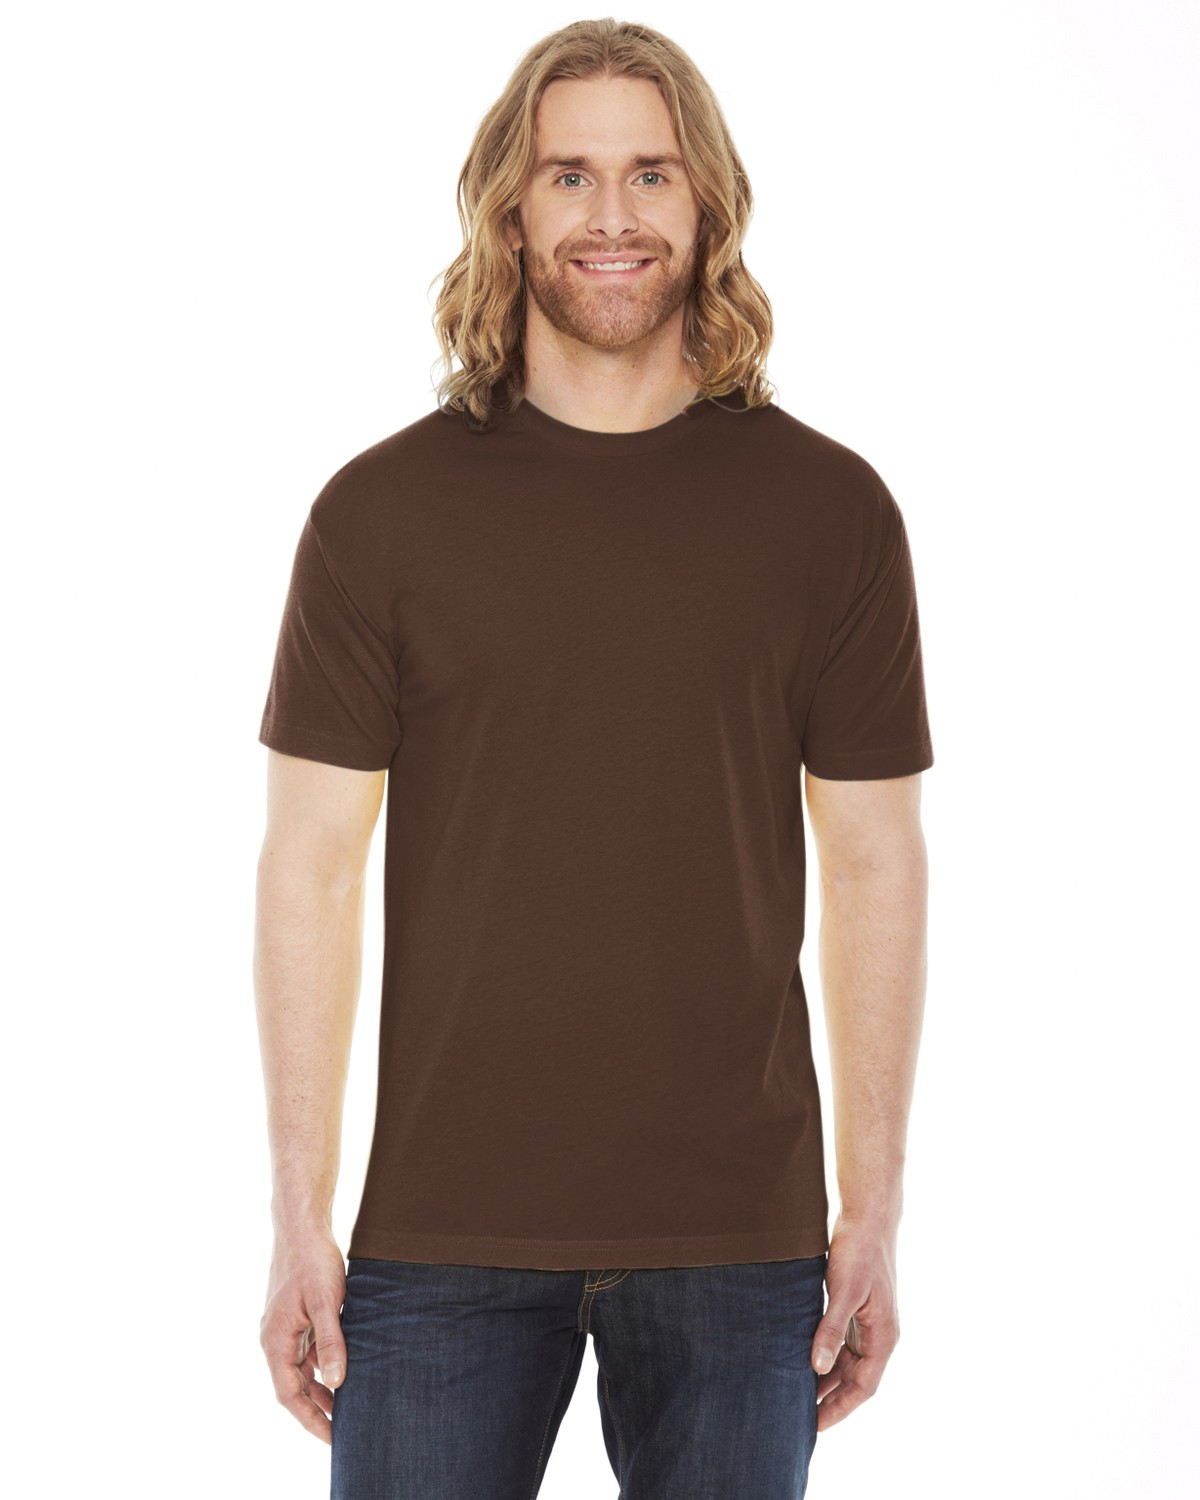 BB401W American Apparel BROWN